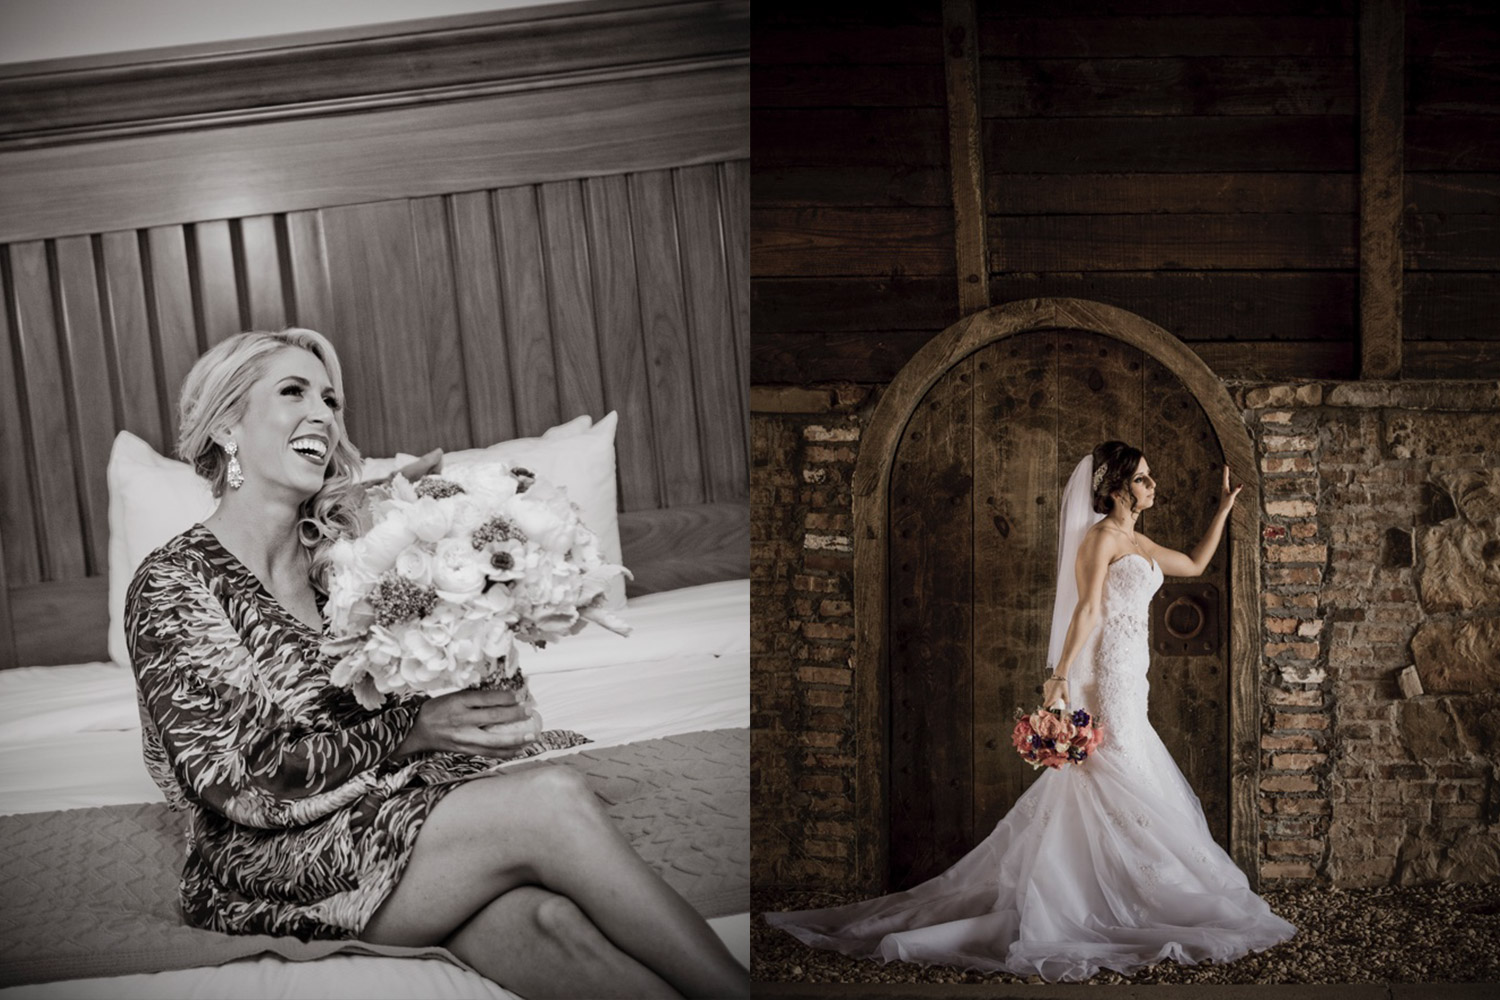 024-2014-2015_top30_by_orlando_wedding_photographer_brianadamsphoto.com.jpg